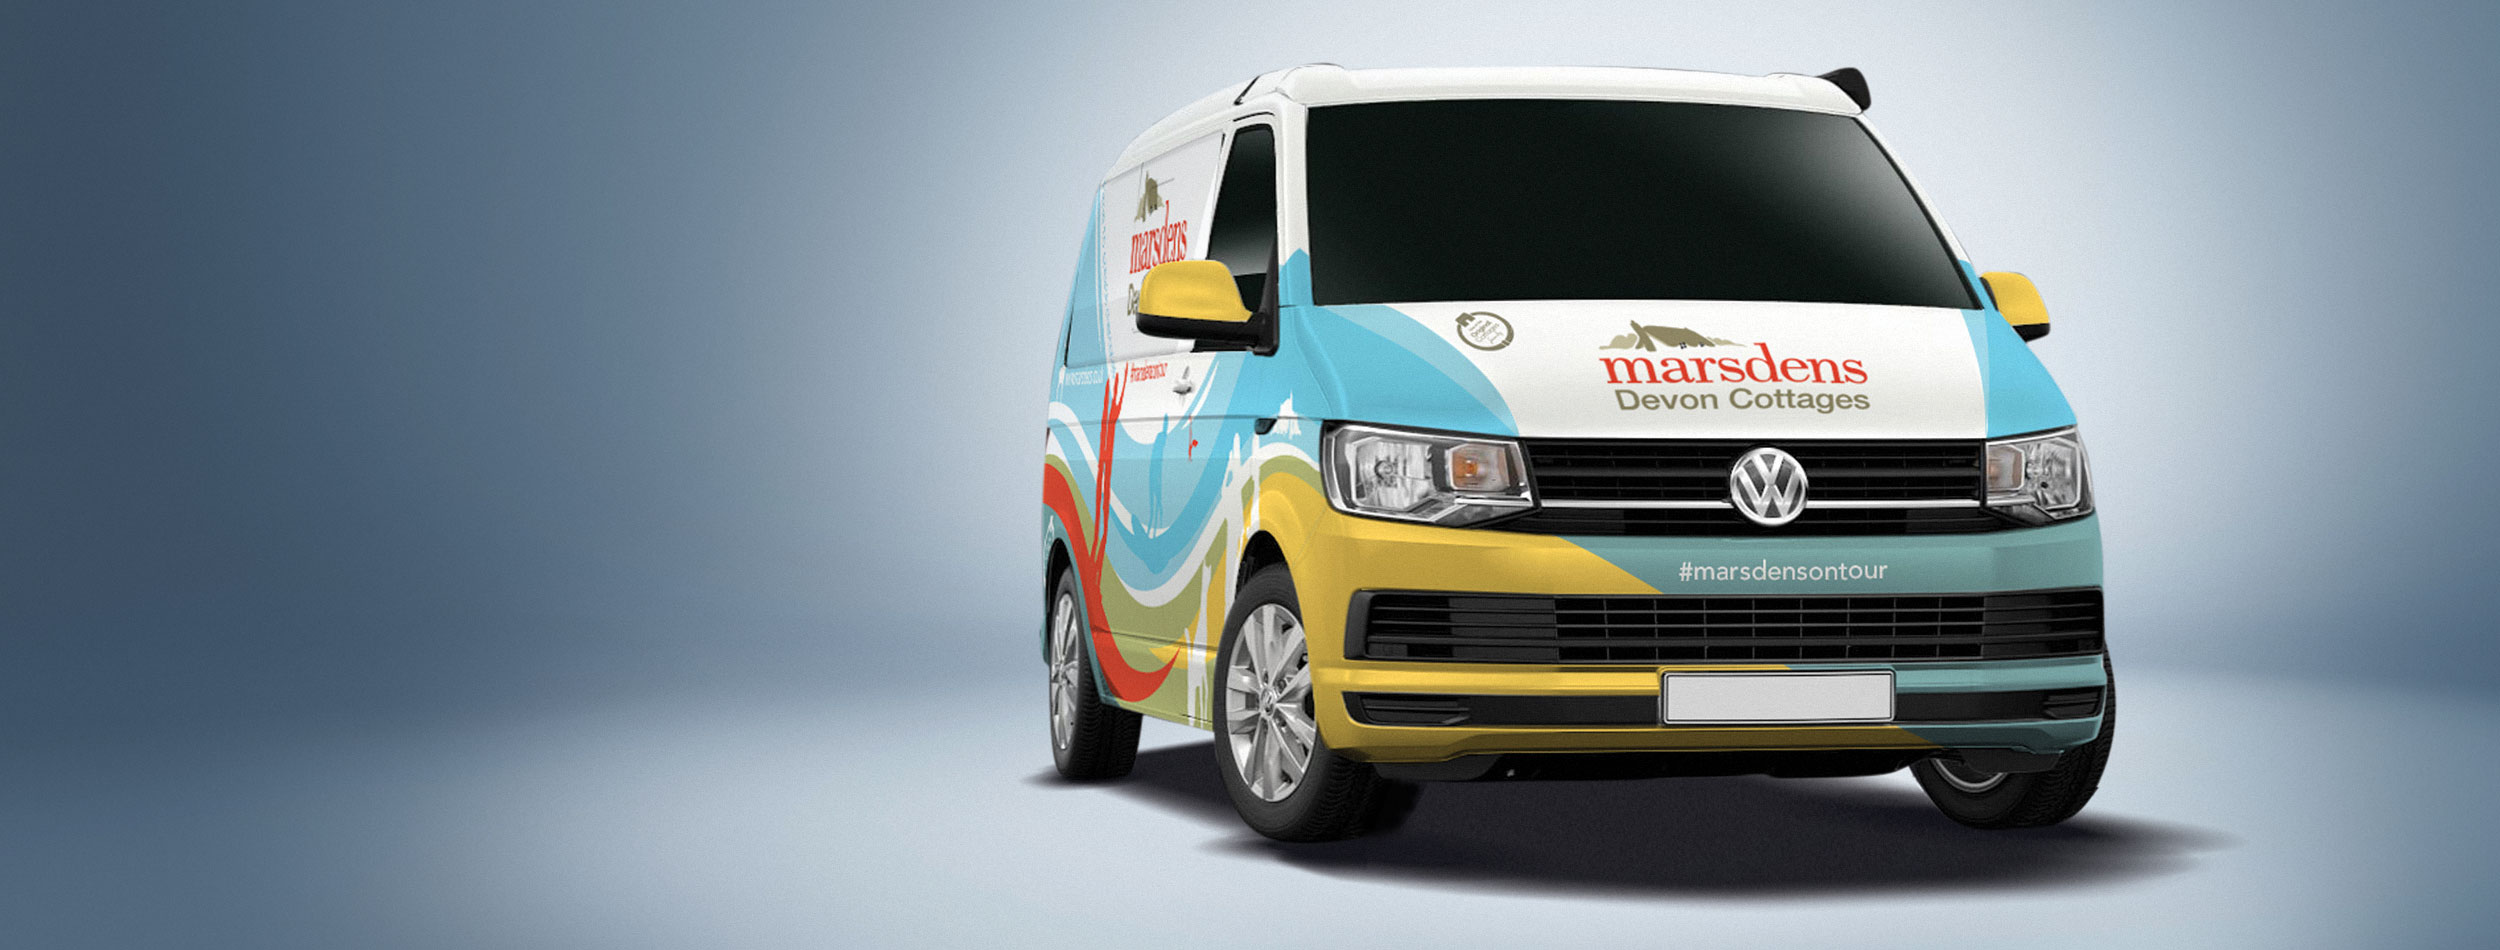 Marsdens Van Livery Design by Inventive